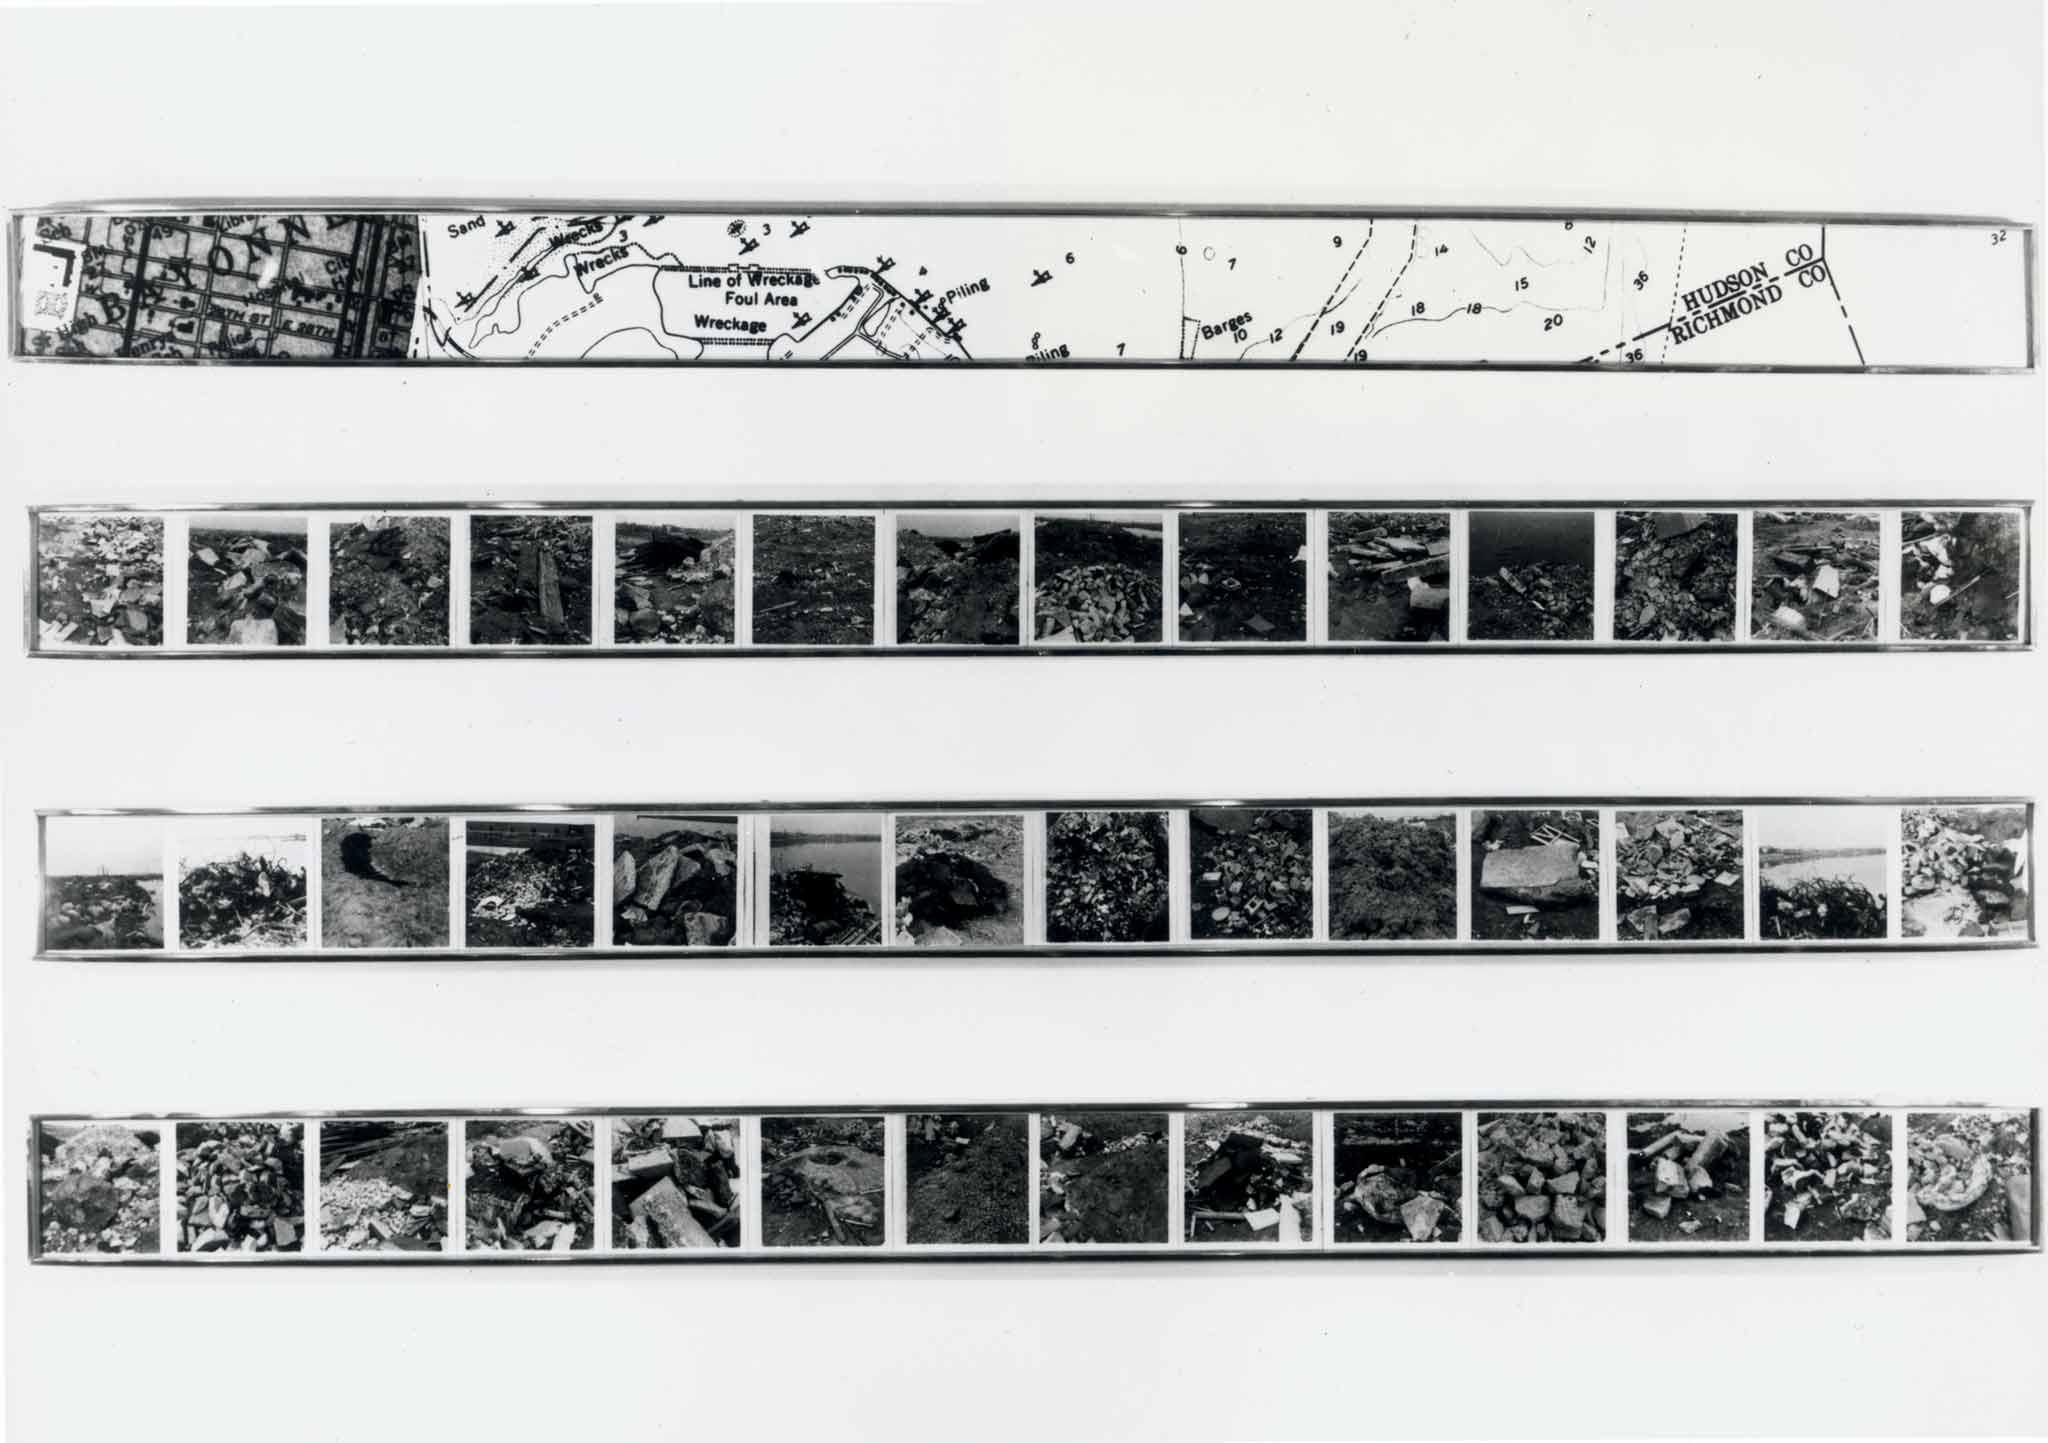 black and white image of four framed horizontal images.  The top frame contains a map and the bottom three contain multiple photographs